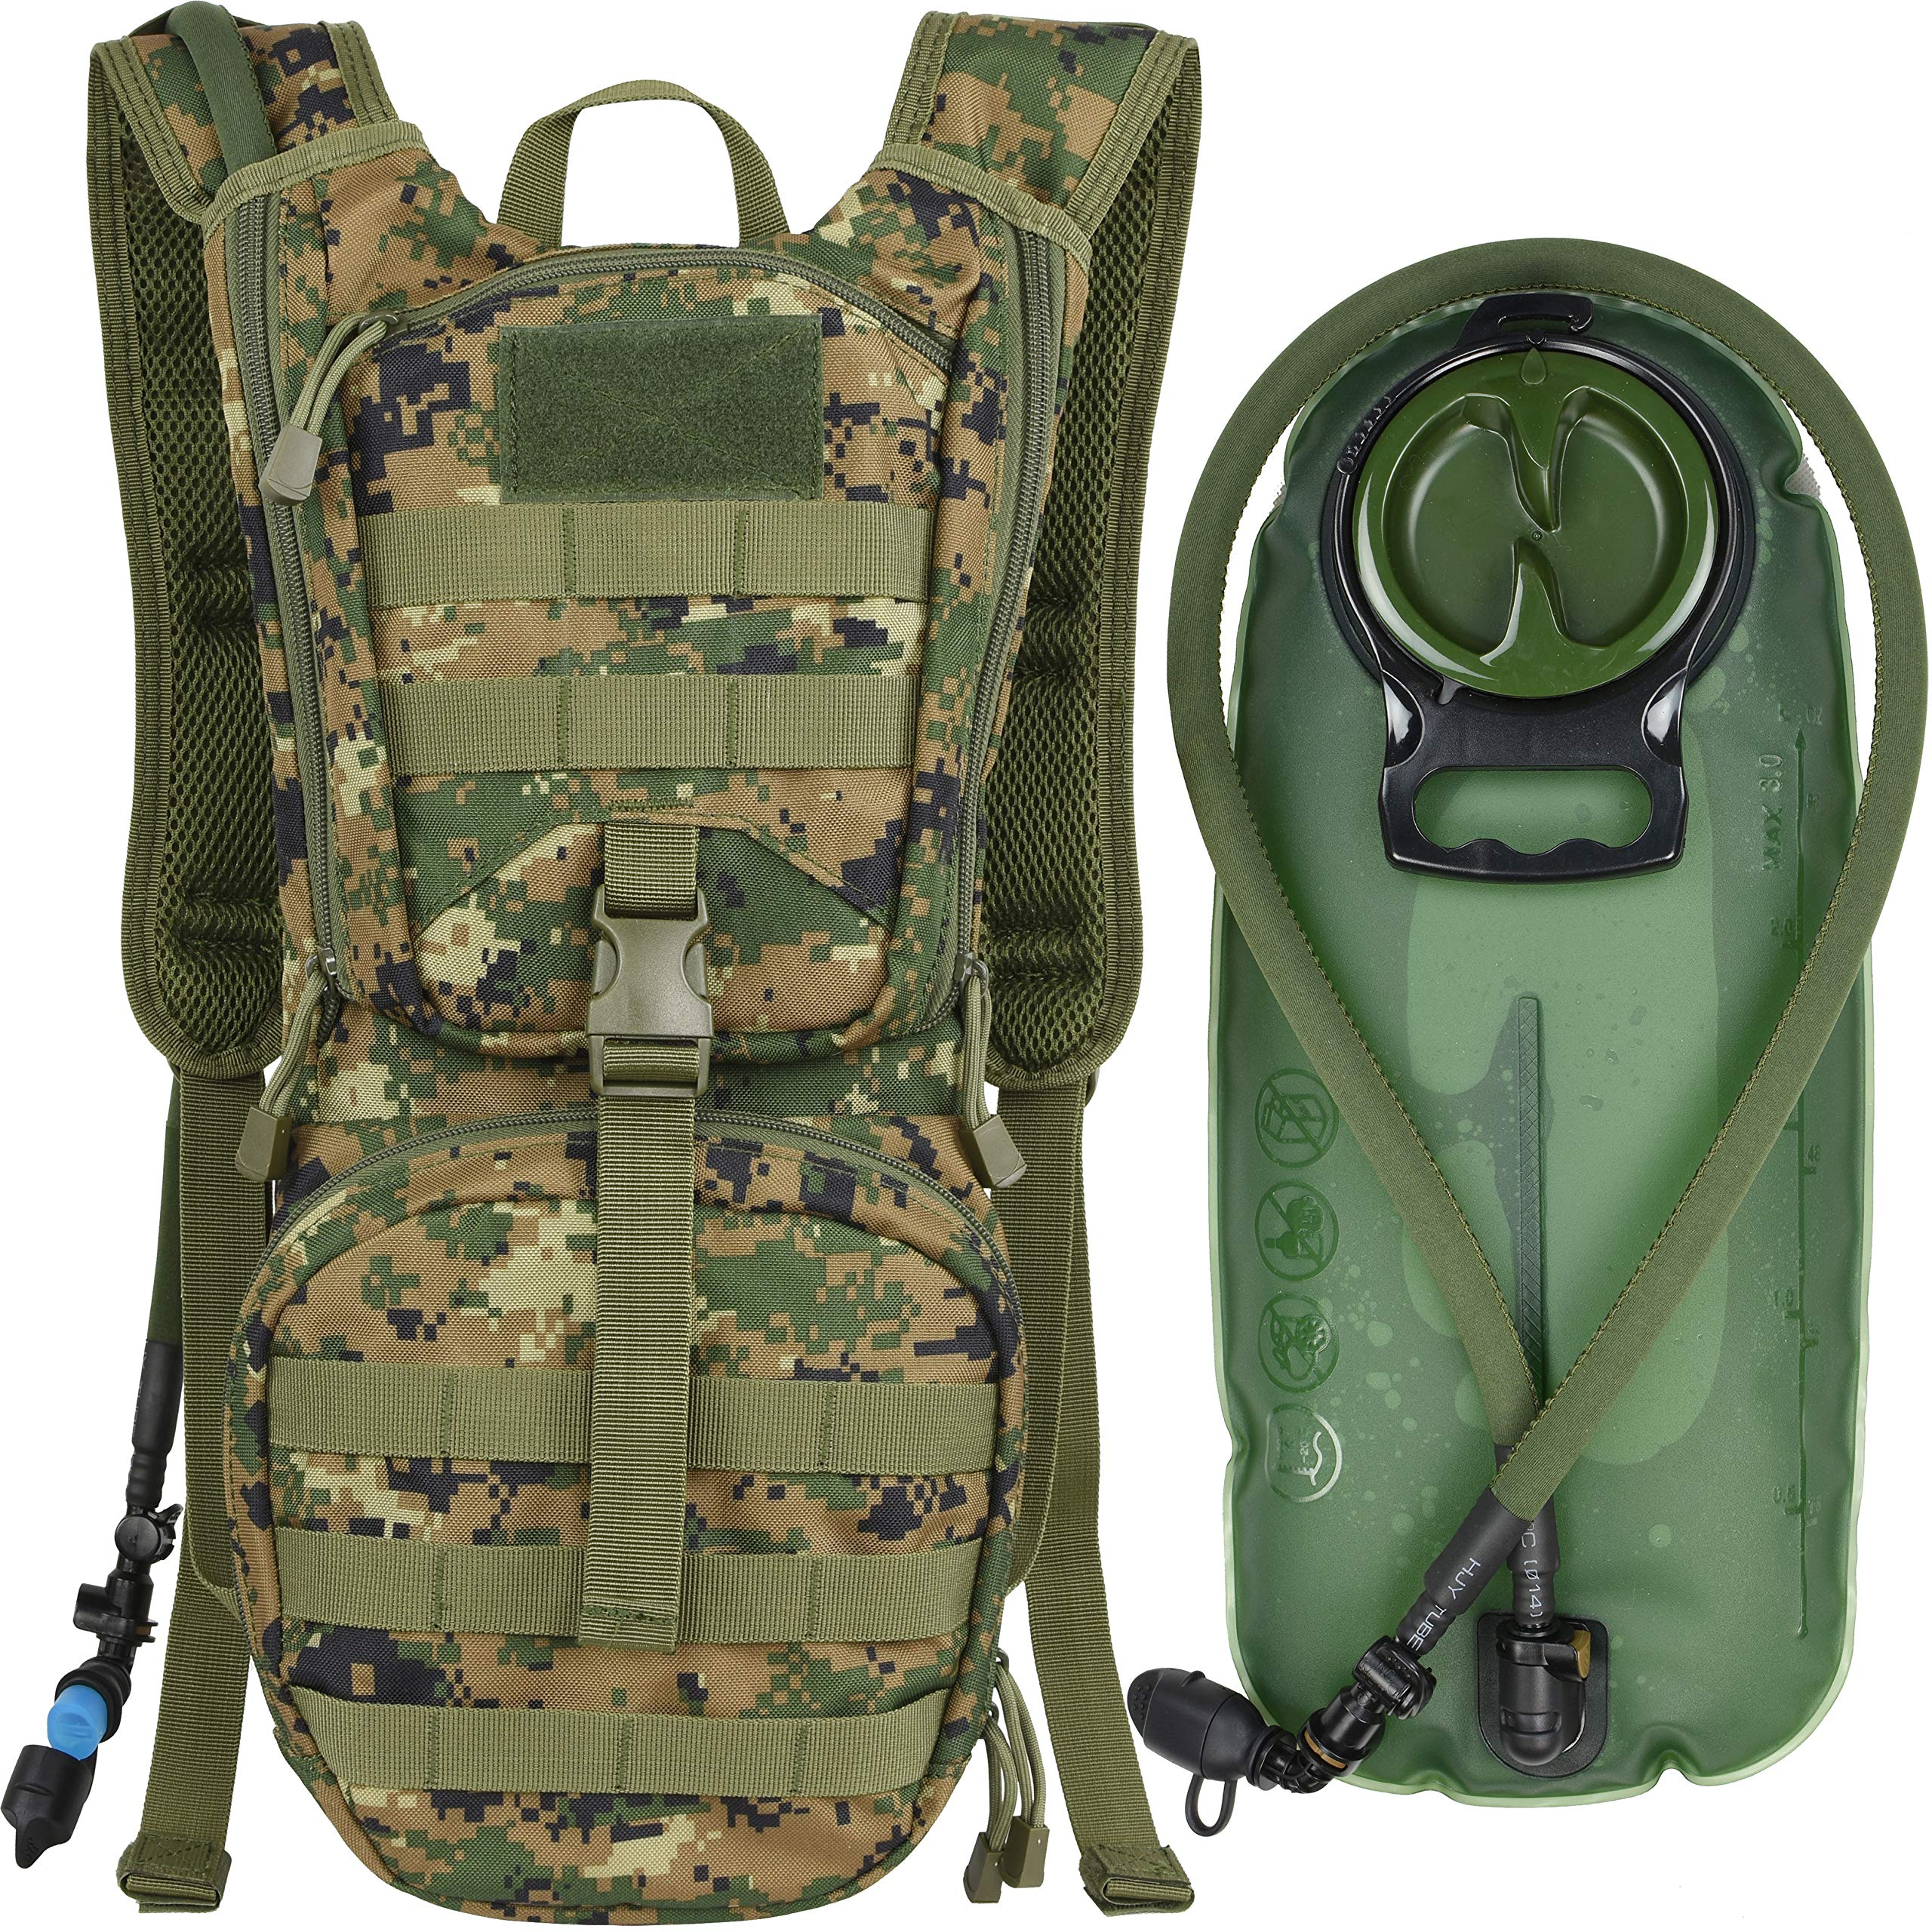 MARCHWAY Tactical Molle Hydration Pack Backpack with 3L TPU Water Bladder, Military Daypack for Cycling, Hiking, Running, Climbing, Hunting, Biking (Digital Woodland) by MARCHWAY